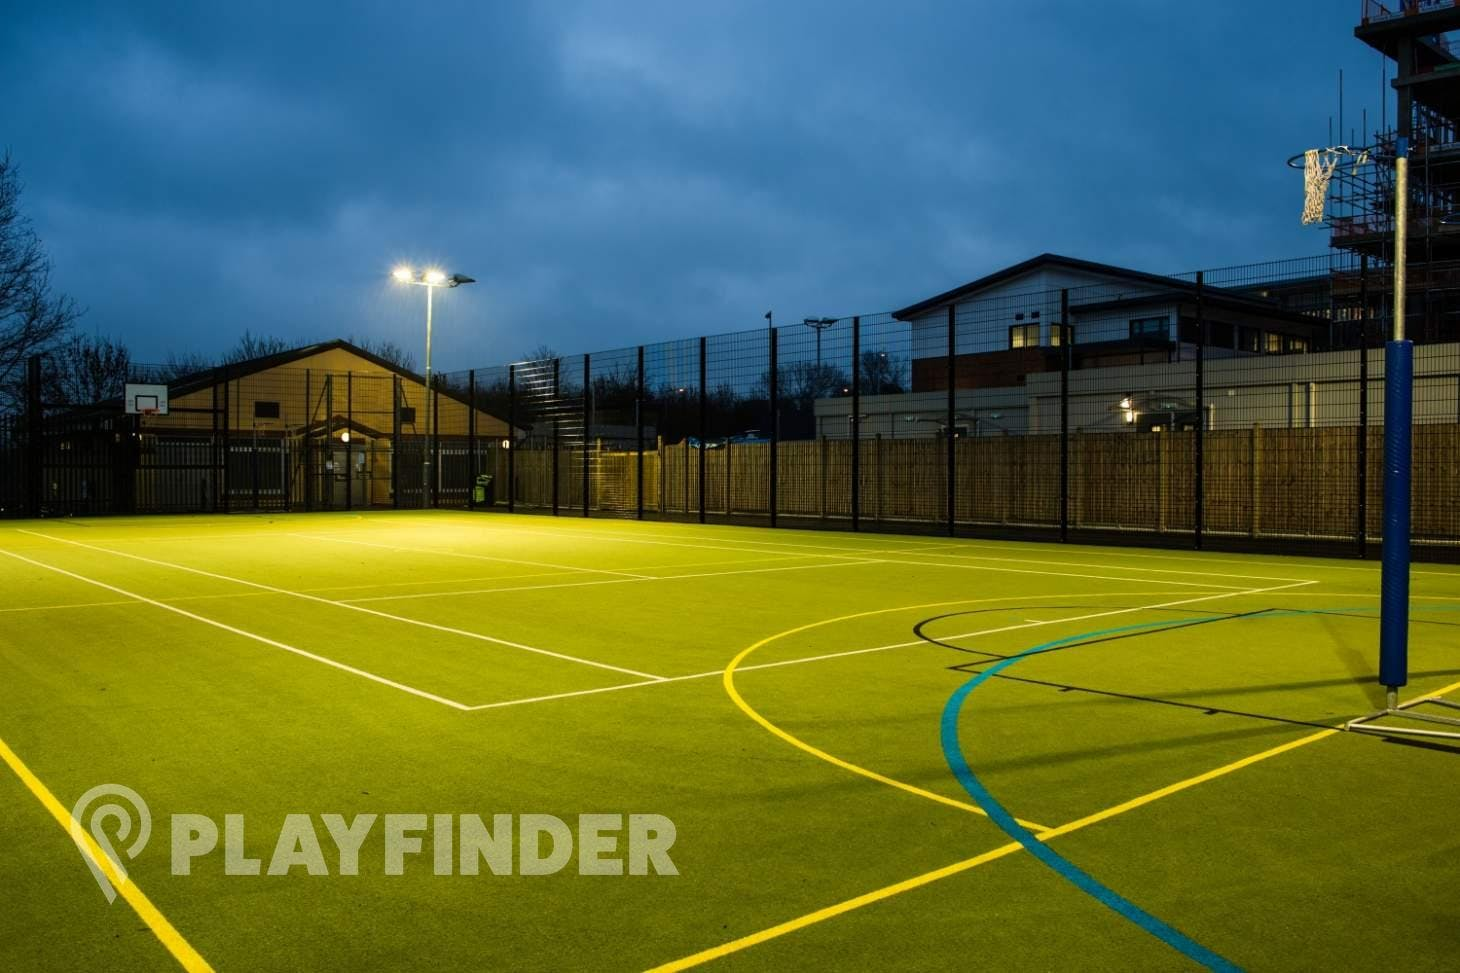 Middlesex University Sports Pitches Outdoor | Astroturf netball court